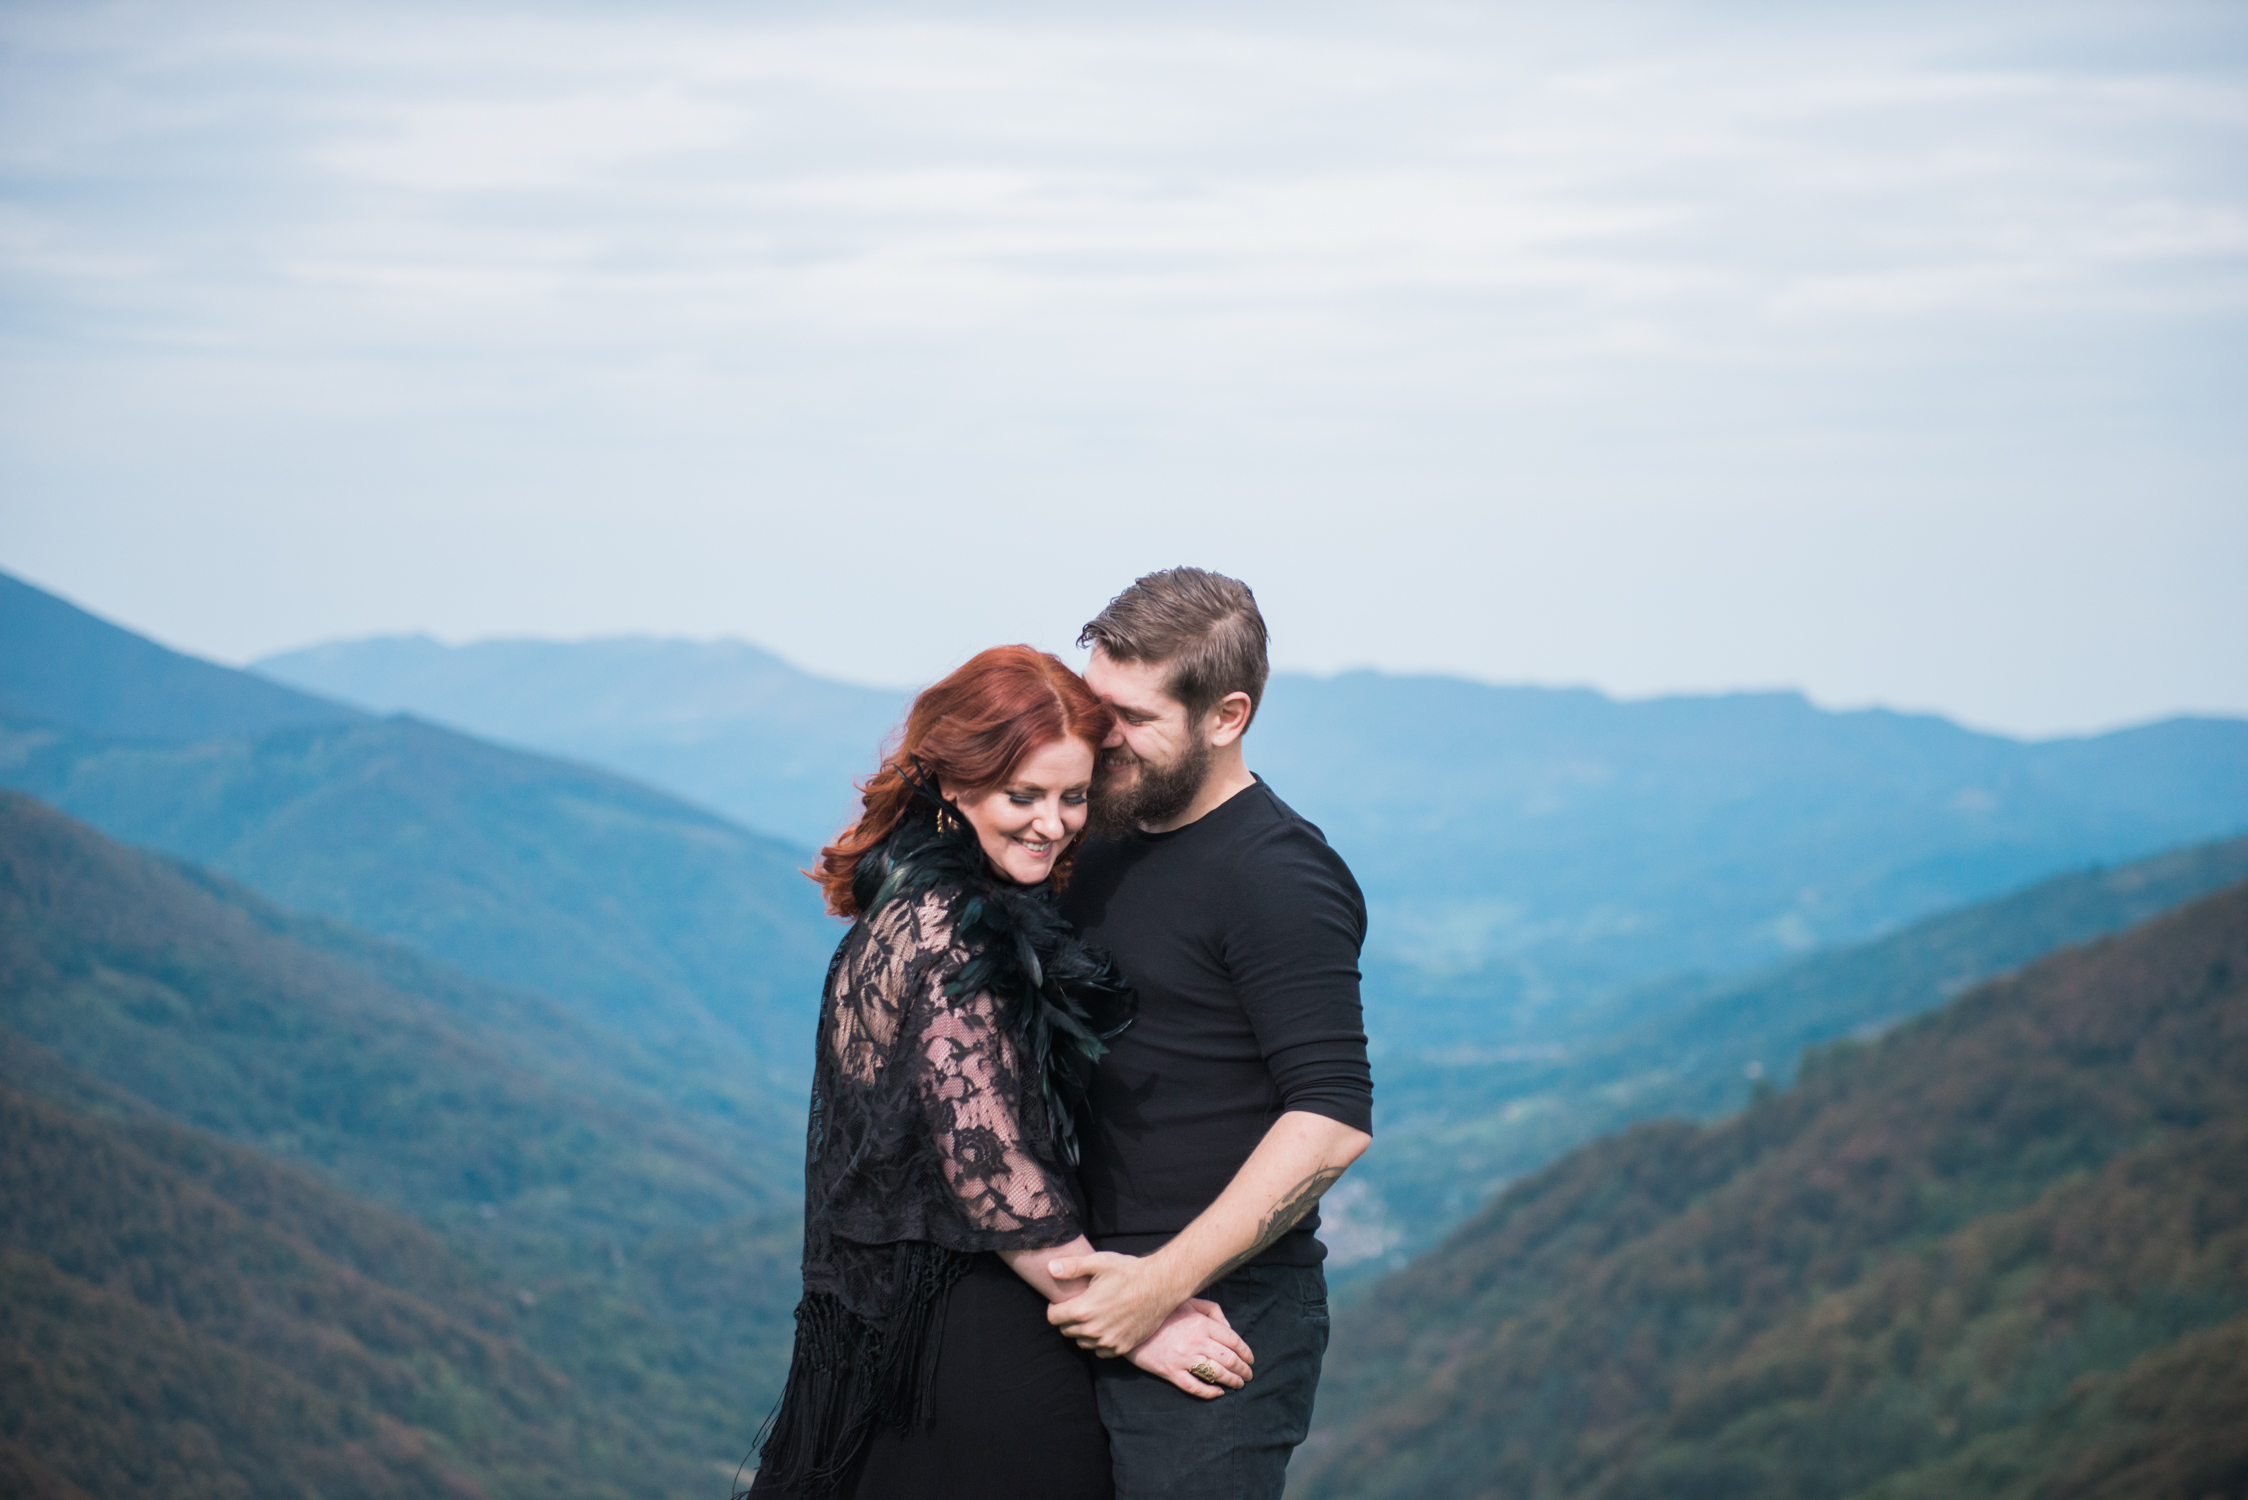 Tattoed man and woman on top of a mountain in the French Pyrenees during a photo shoot in an elopement setting